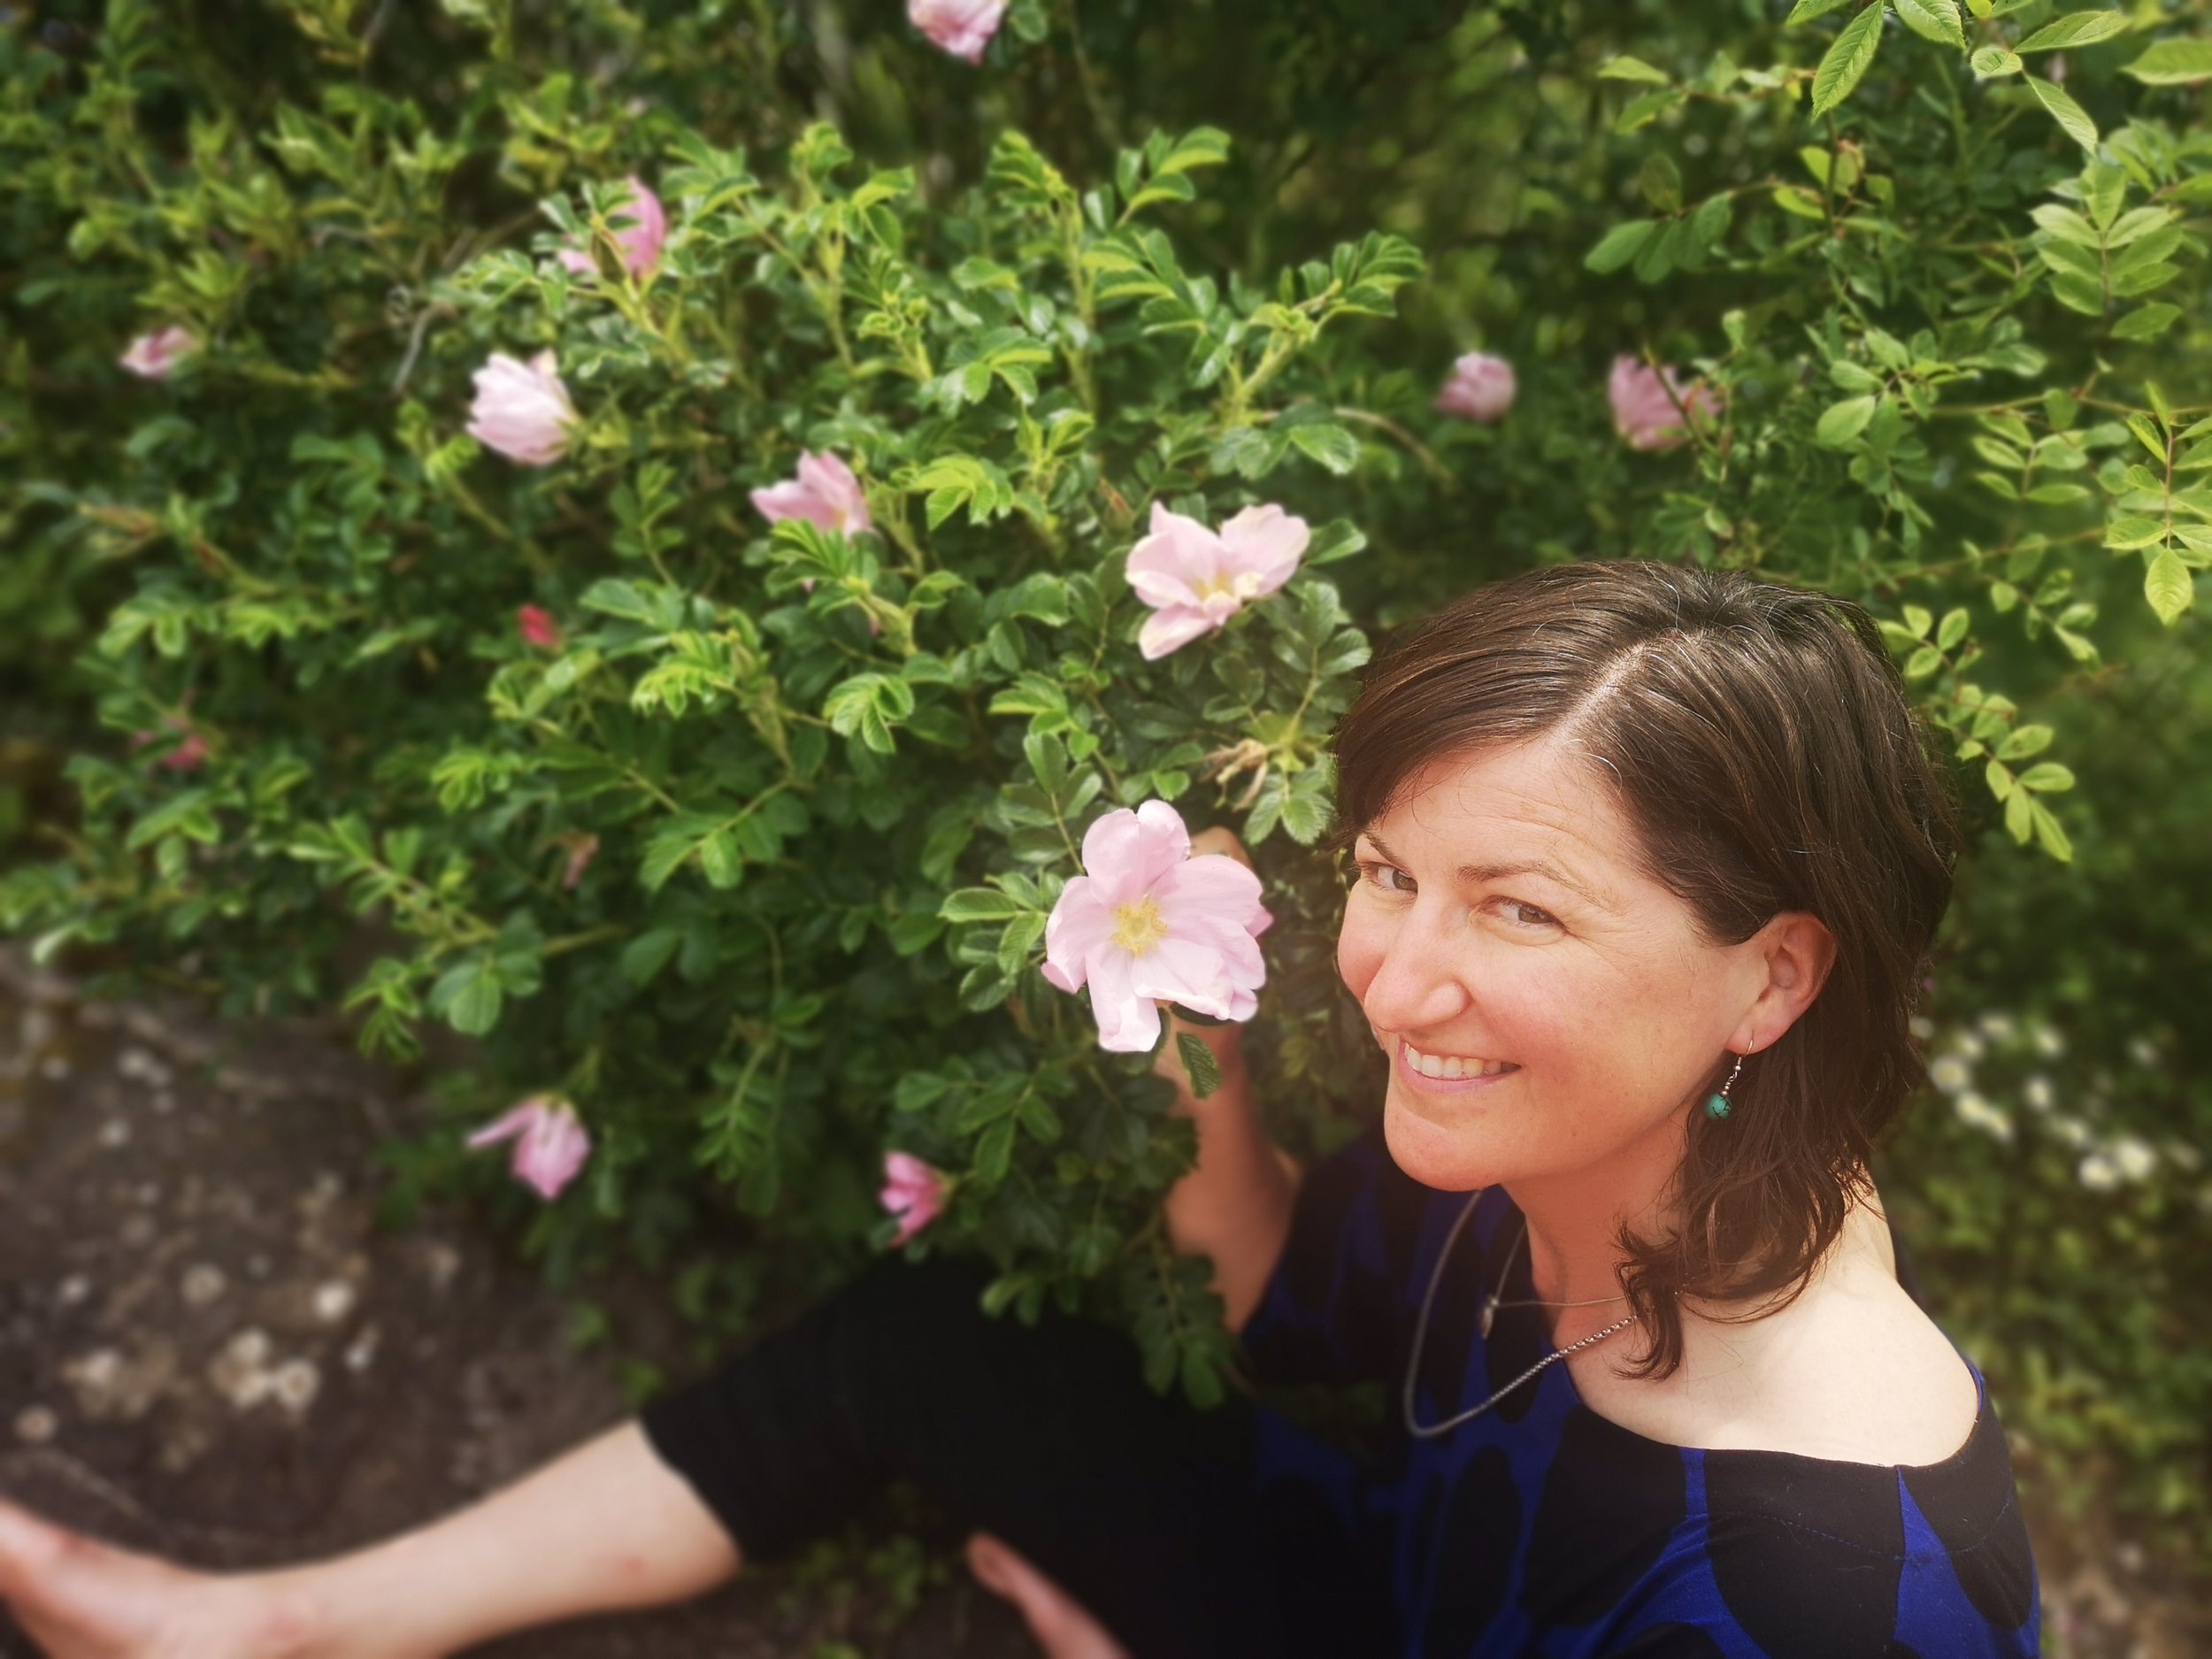 Belle - Beautiful Belle is deeply knowledgeable about the healing, medicinal properties of plants, contributing her illustrations to books and projects nationwide. Join us in July for an illustrative study session of the sensual, soothing rose.Read More About Belle